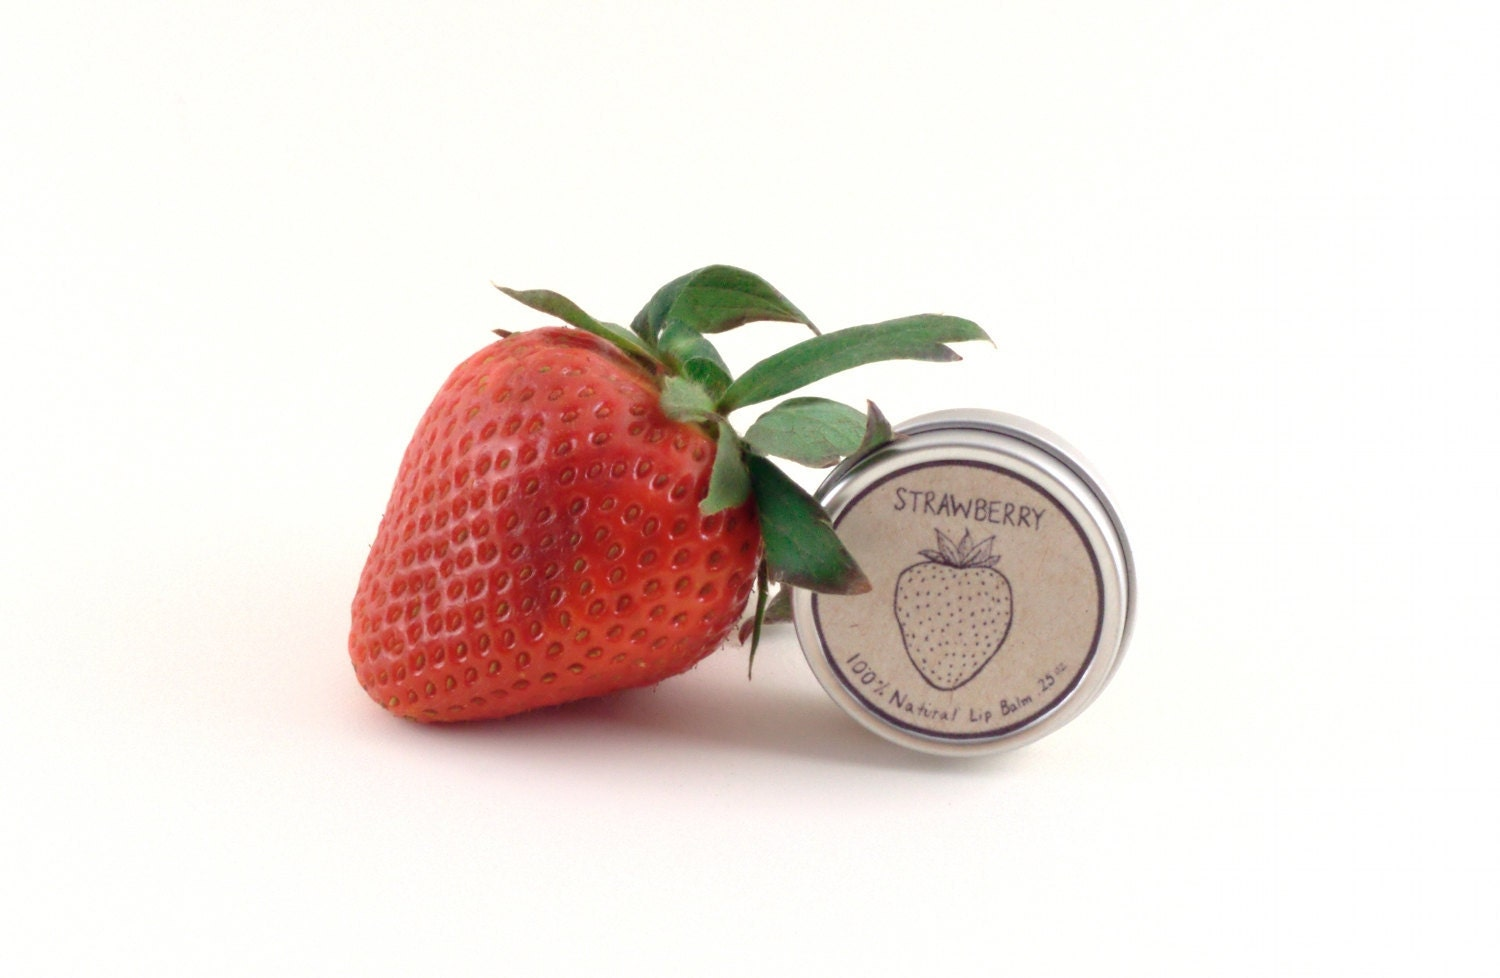 Strawberry Lip Balm - Made with all natural local beeswax and orgainc shea butter - Lip Balm Tin - EvergreenCo